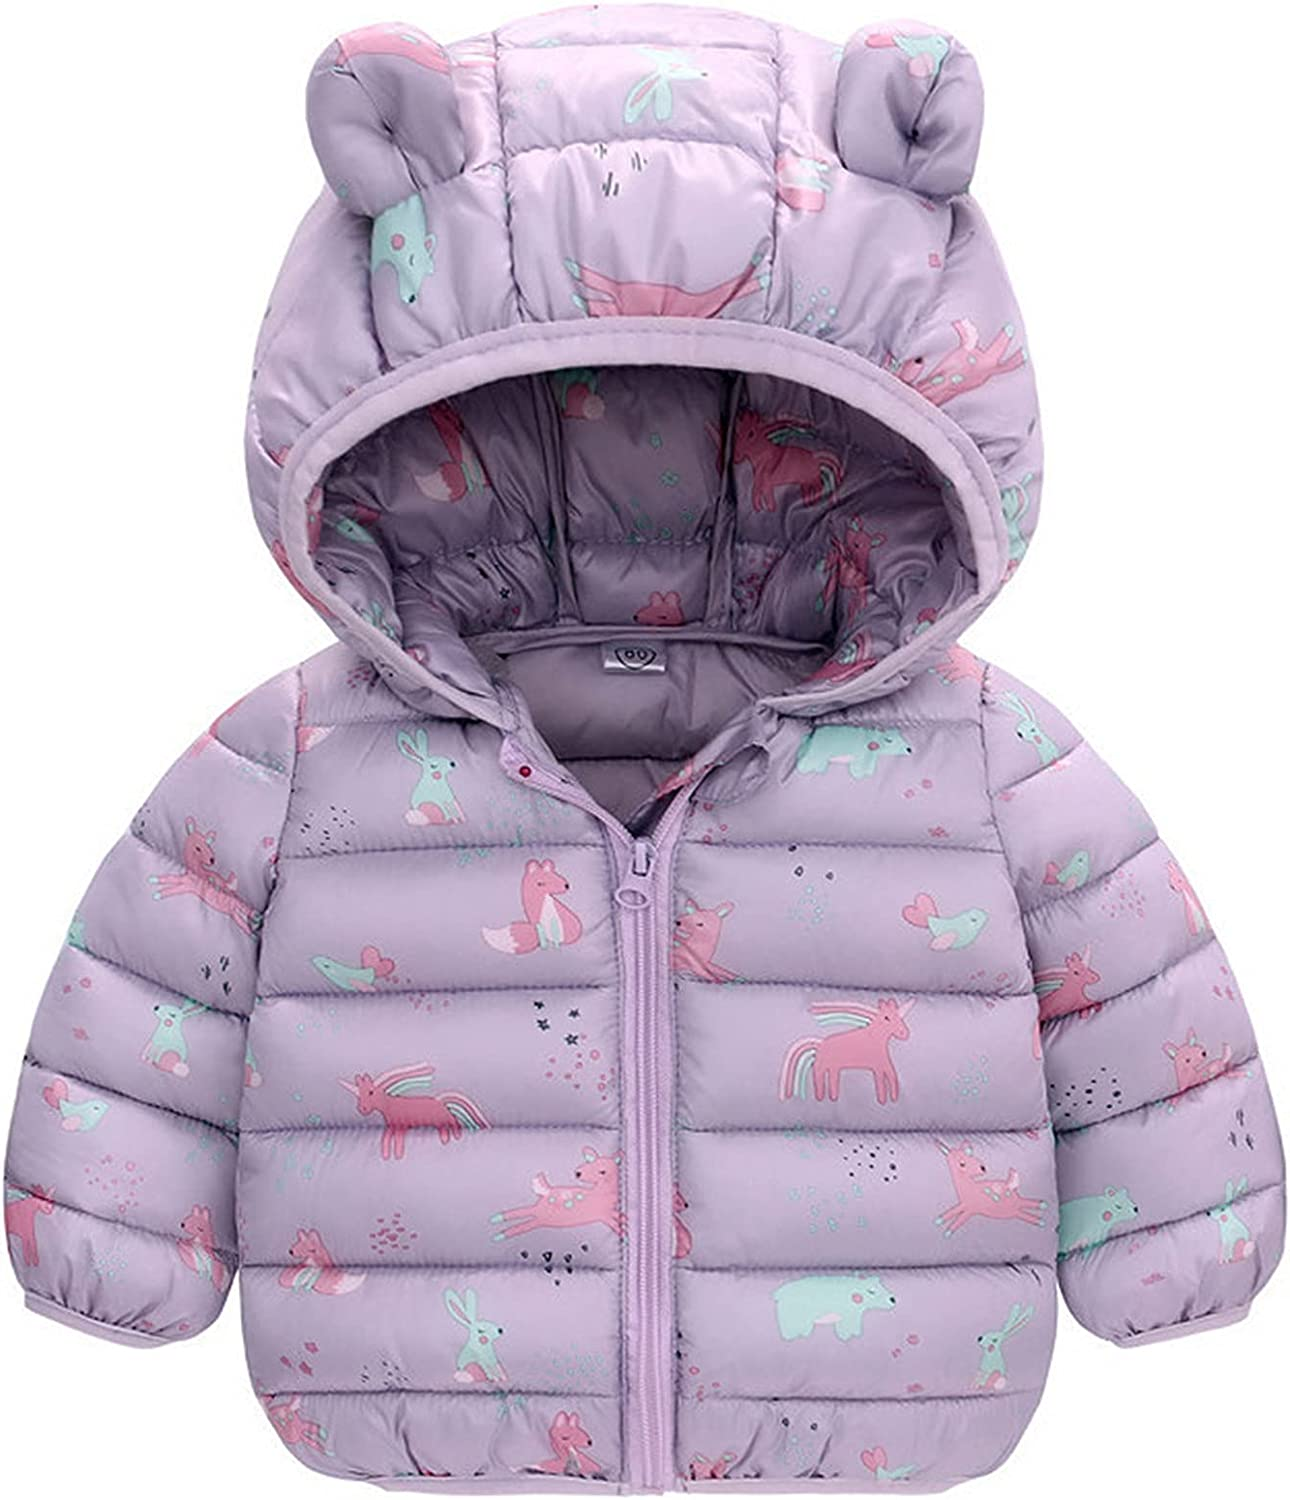 DOAEGNG Toddler Baby Special sale item Girls Boys Winter C Hooded National products Outerwear Jacket